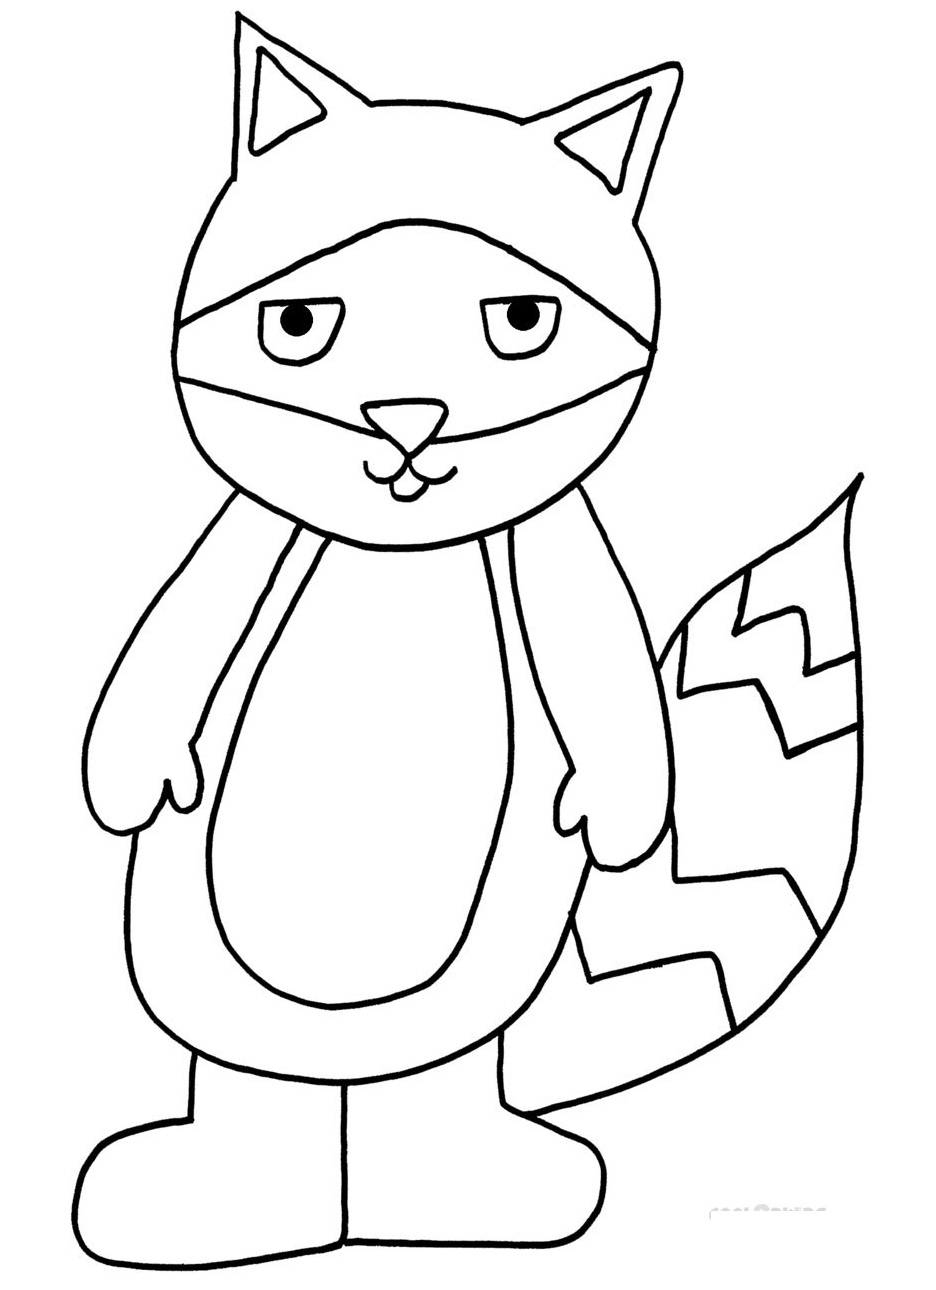 Click to see printable version of Mapache Hilarante Coloring page